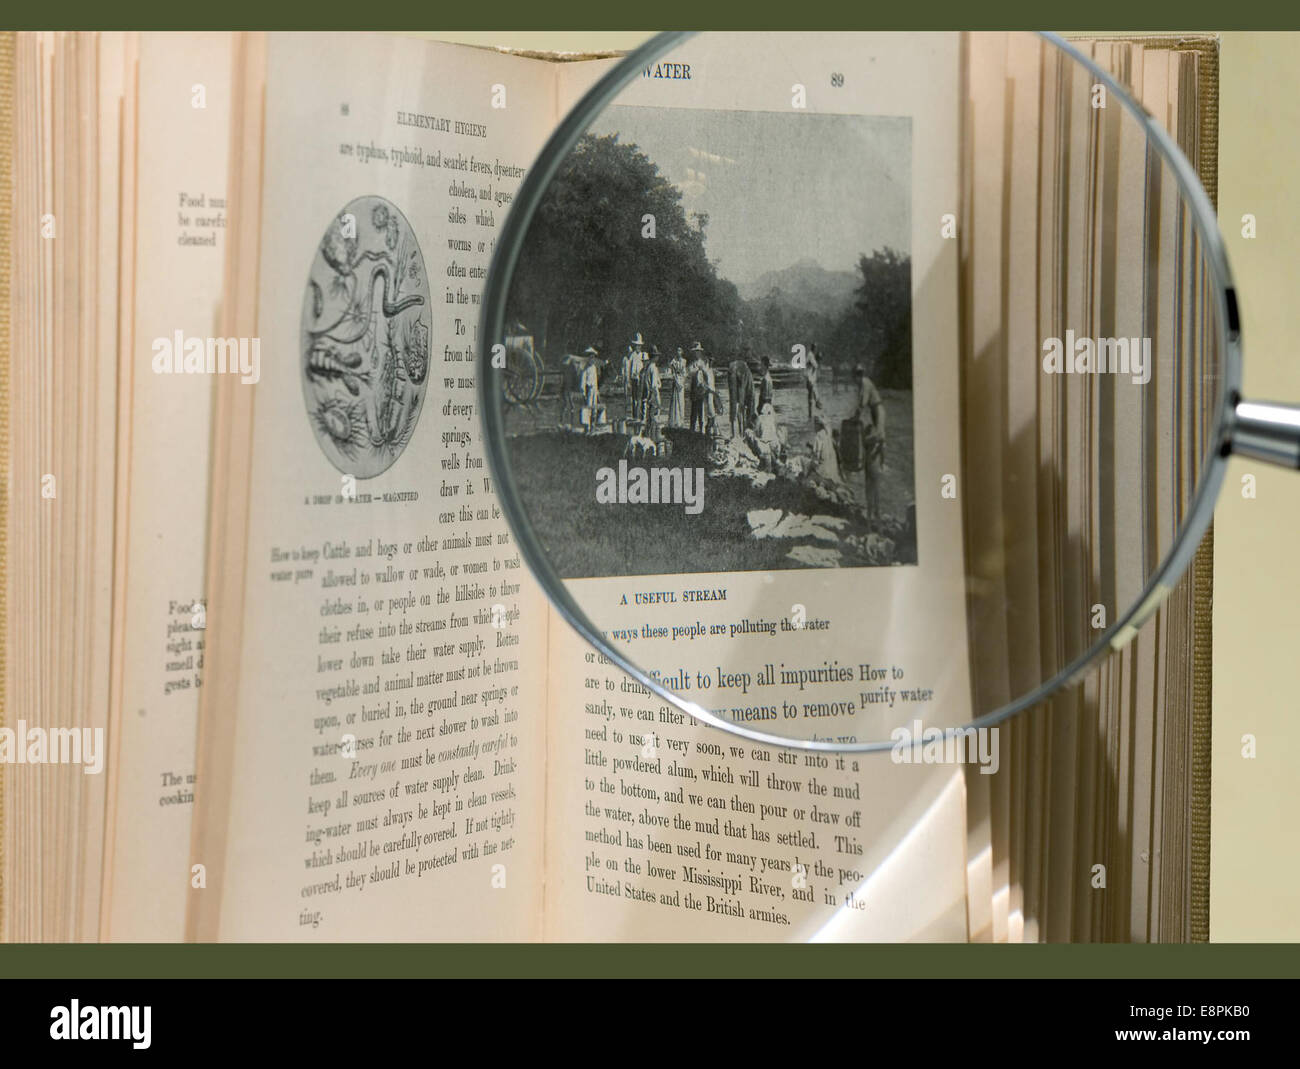 Appears In: Ames, Azel, 1845-1908. Elementary hygiene for the tropics Image Description: Image of an open book with - Stock Image